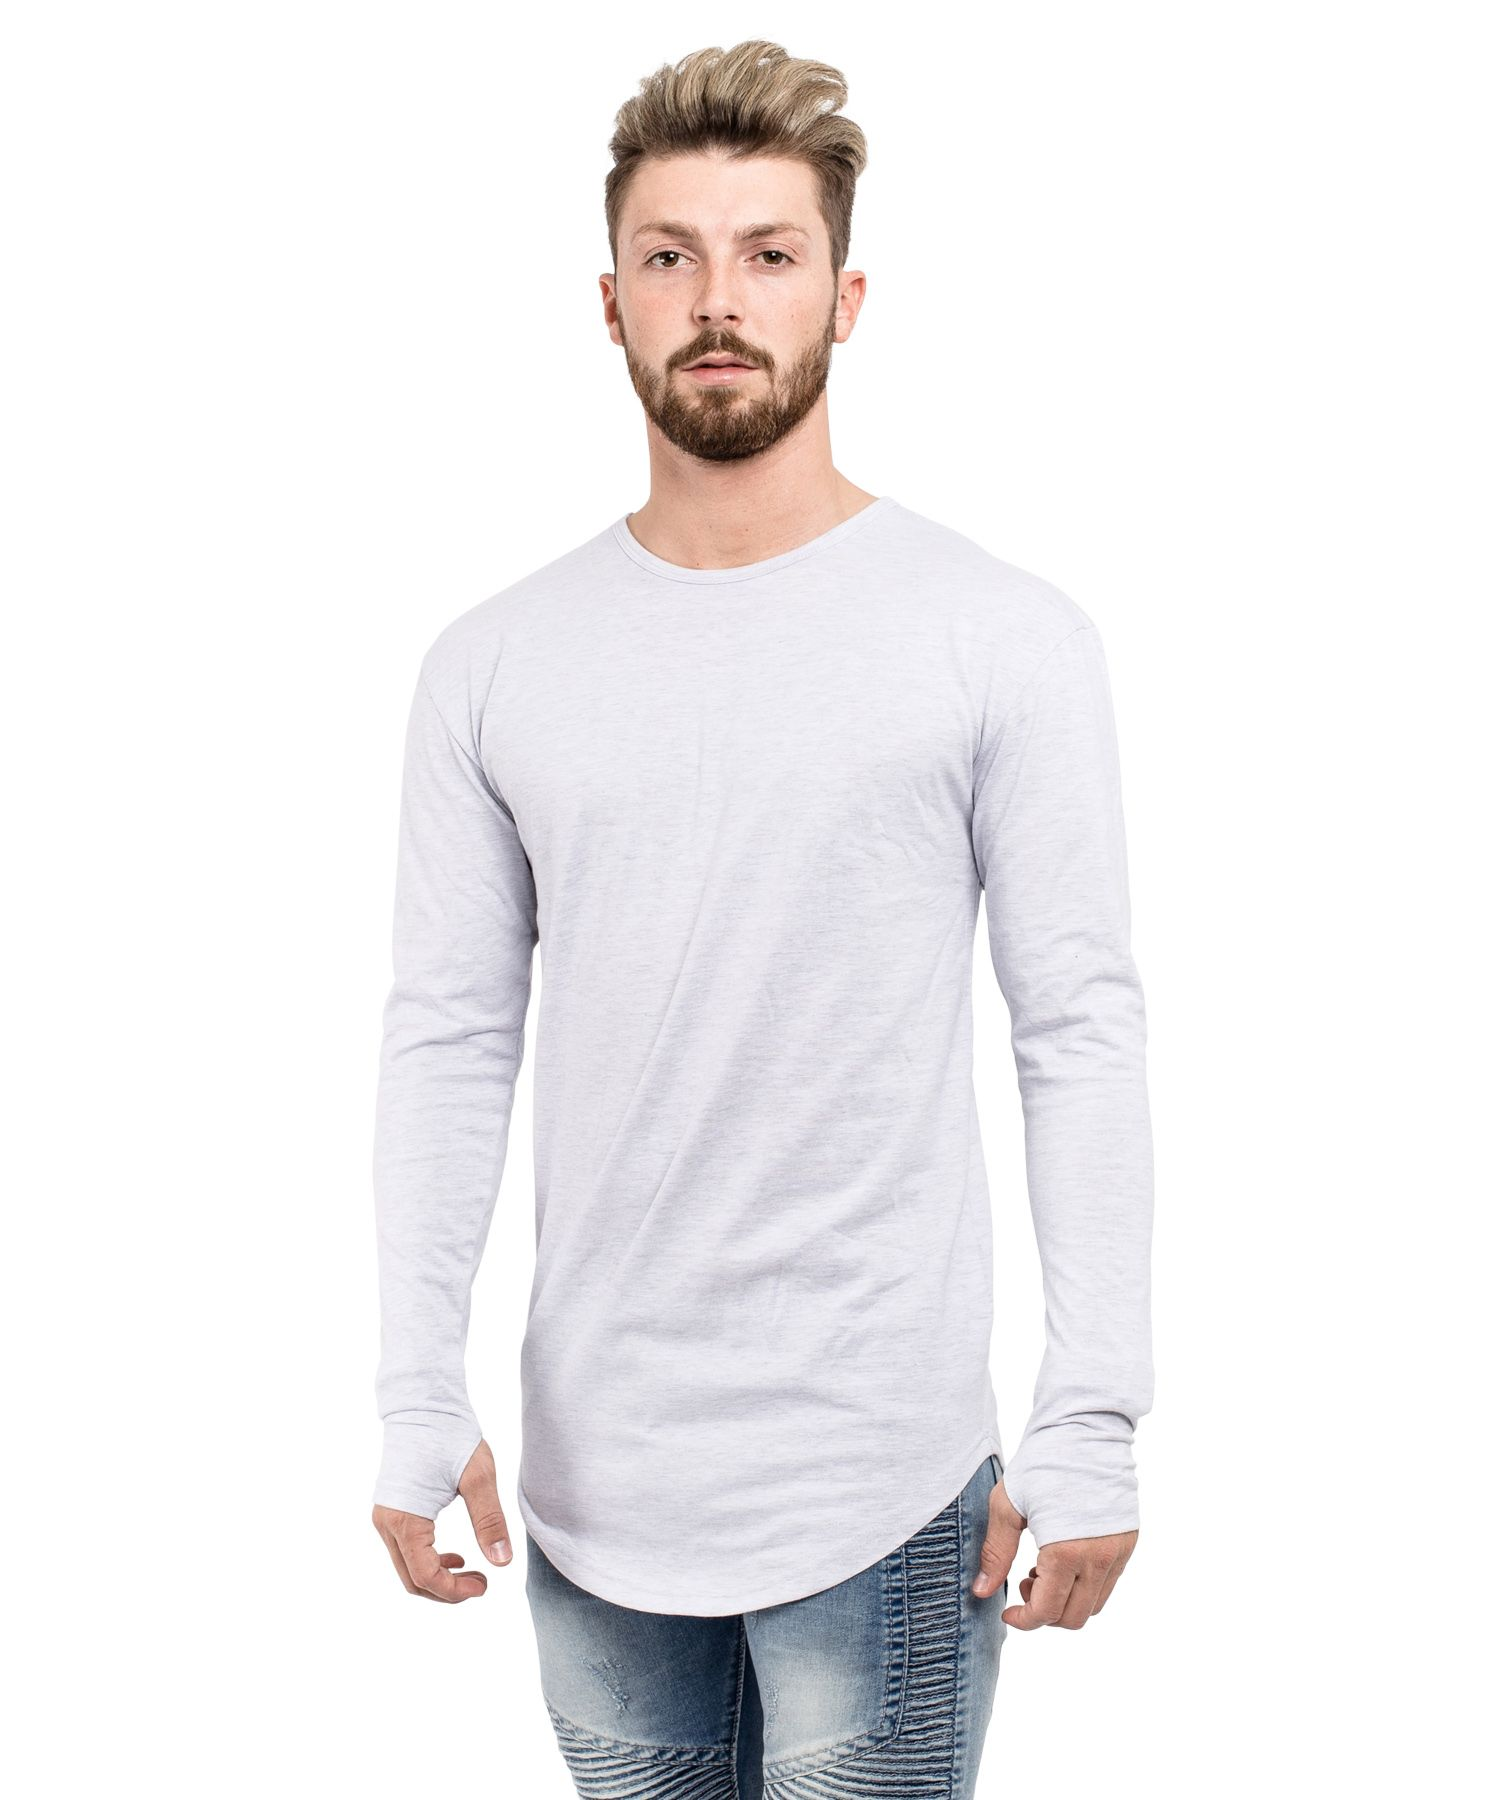 4721f831a536 Mens Oversized Long Sleeve T Shirt – EDGE Engineering and Consulting ...